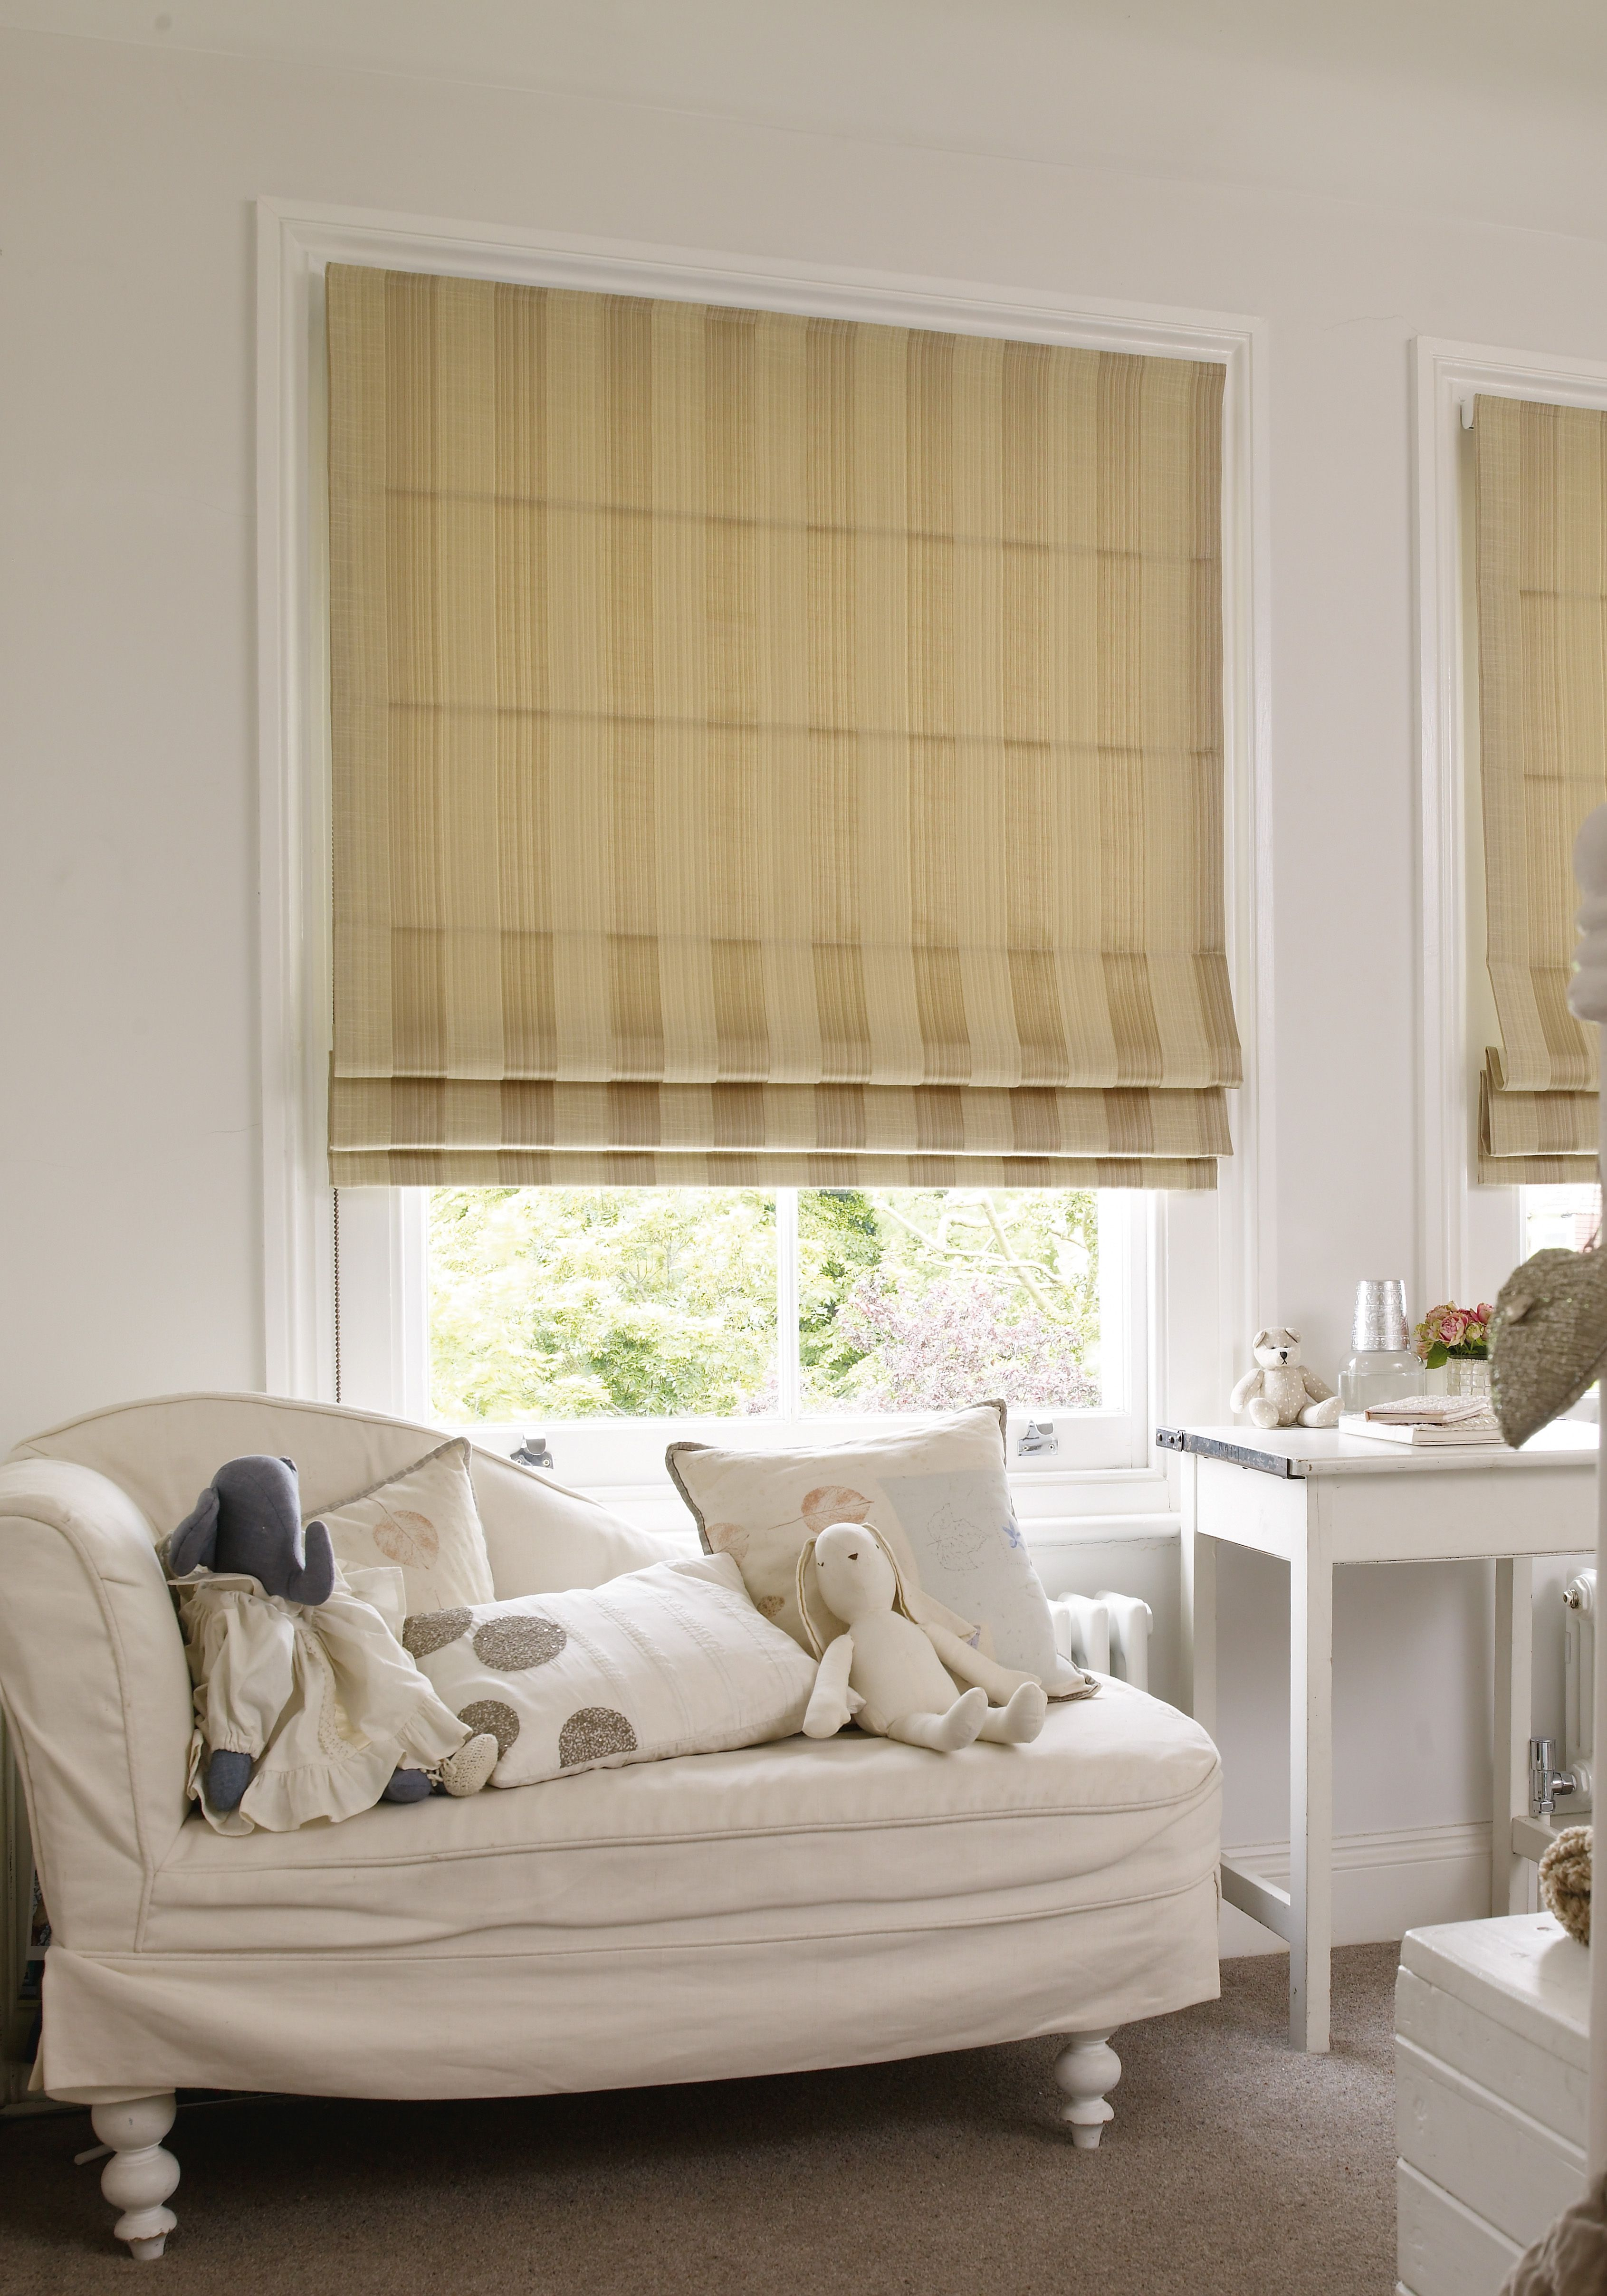 Our Beautiful Roman Blinds Come In A Wide Range Of Fabrics